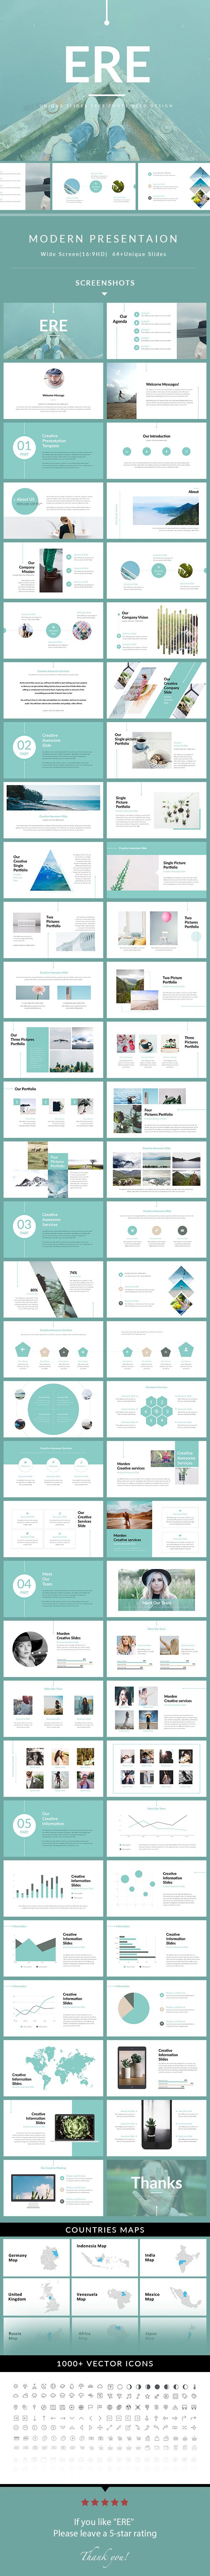 ERE  Modern PowerPoint Template — Powerpoint PPT #marketing #portfolio • Download ➝ https://graphicriver.net/item/ere-modern-powerpoint-template/20243493?ref=pxcr